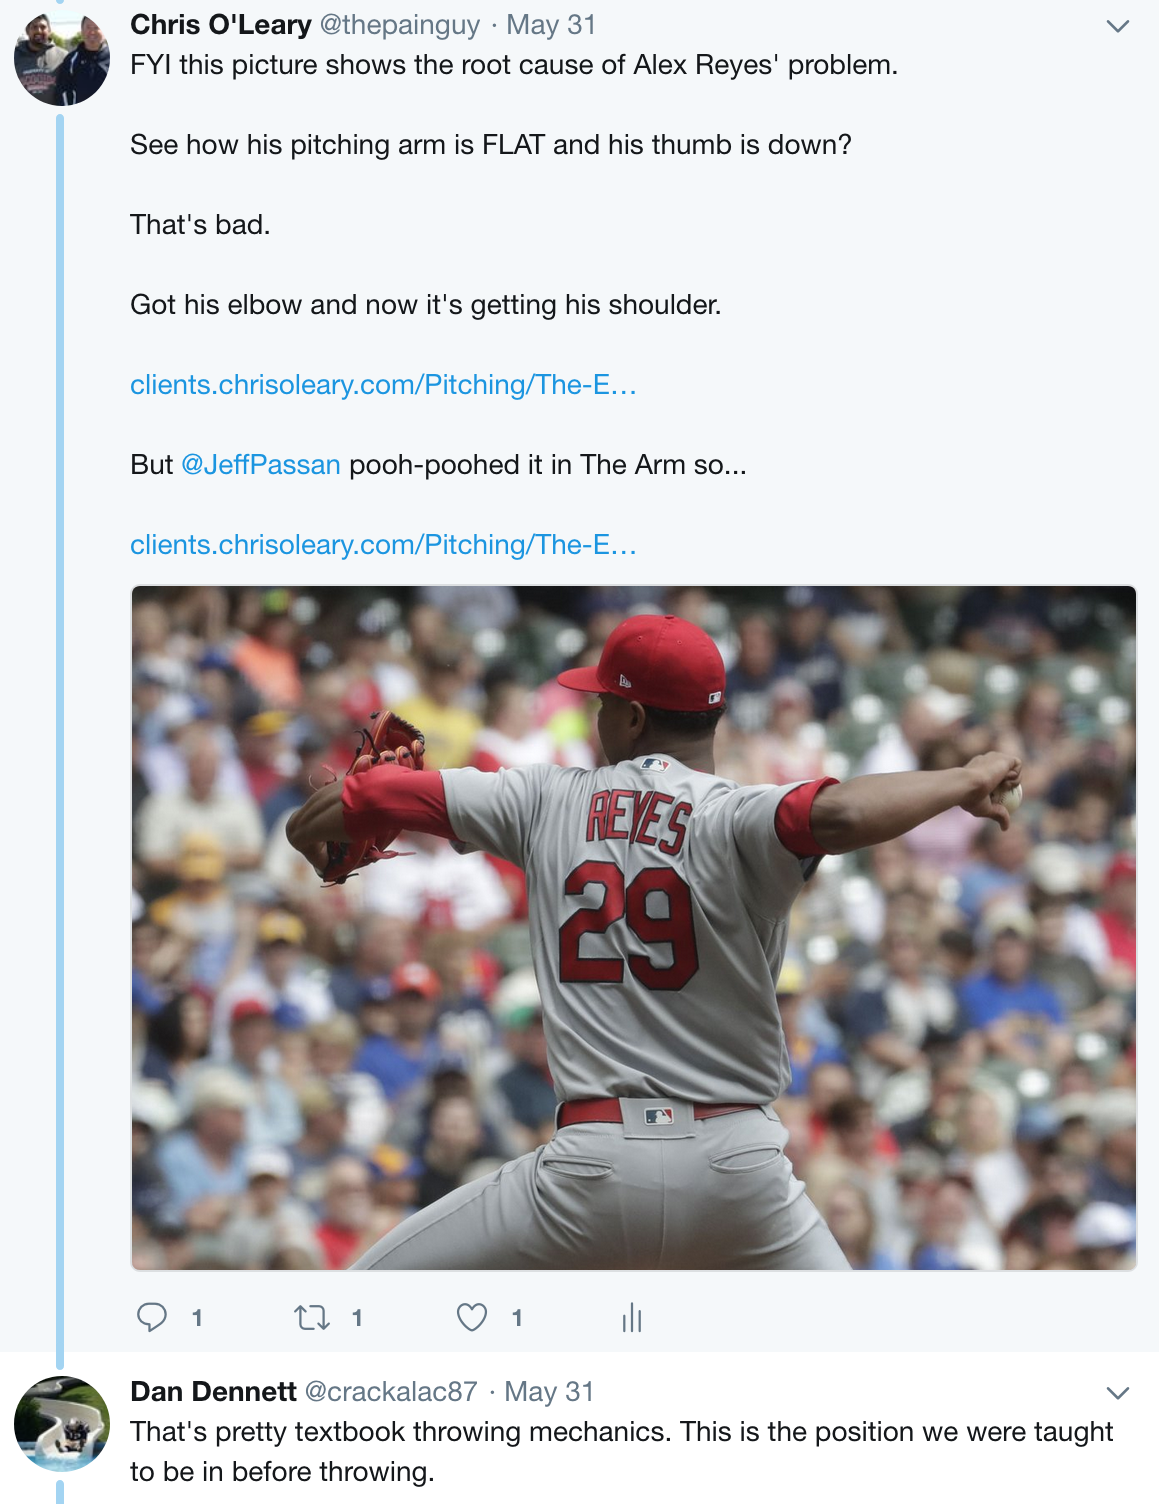 Chris O'Leary Tweet About Alex Reyes